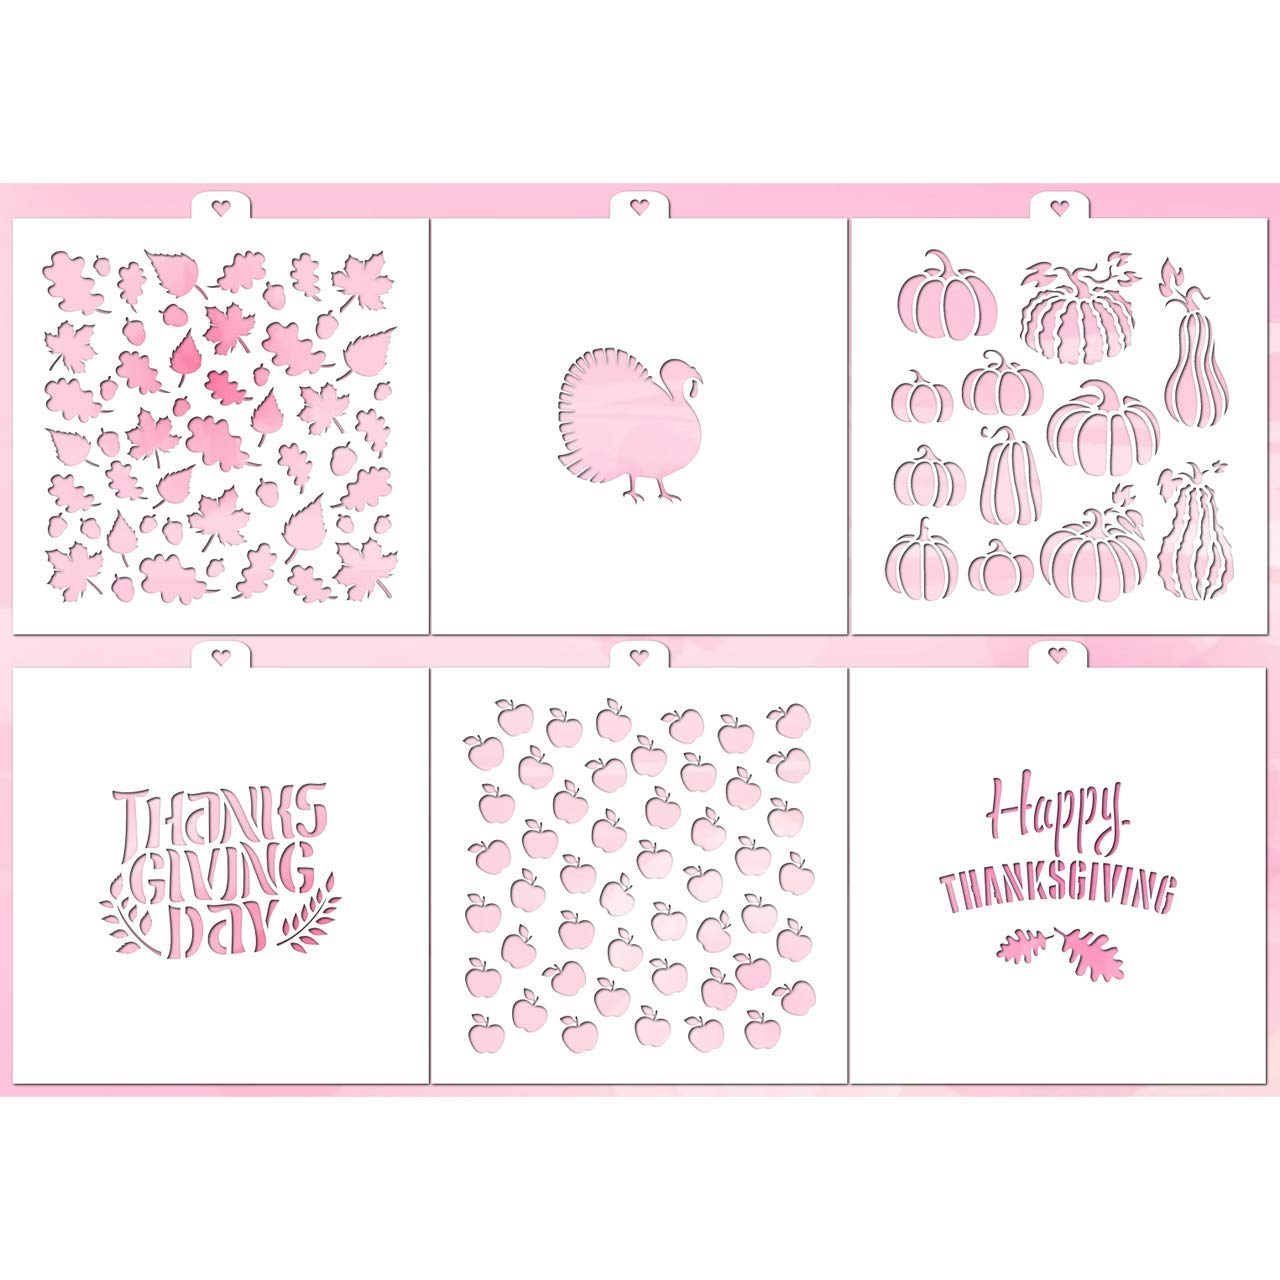 Cookie Stencil Set THANKSGIVING DAY 2, 6 pcs. by Lubimova.com